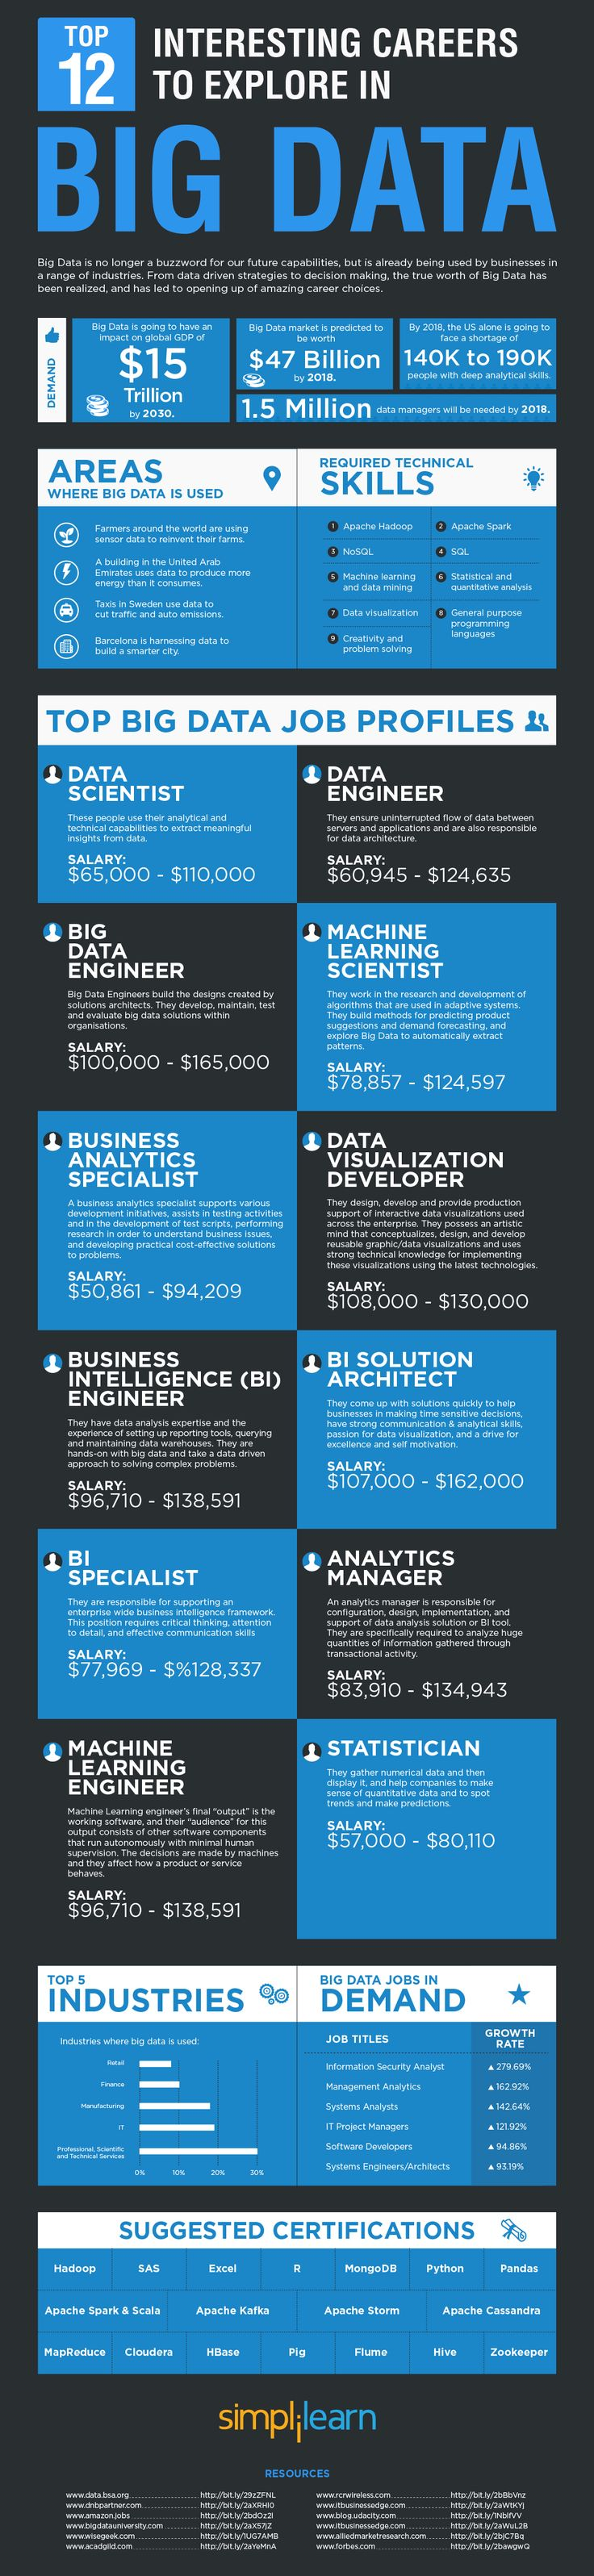 Top 12 interesting careers to explore in bigdata - Data Science Central